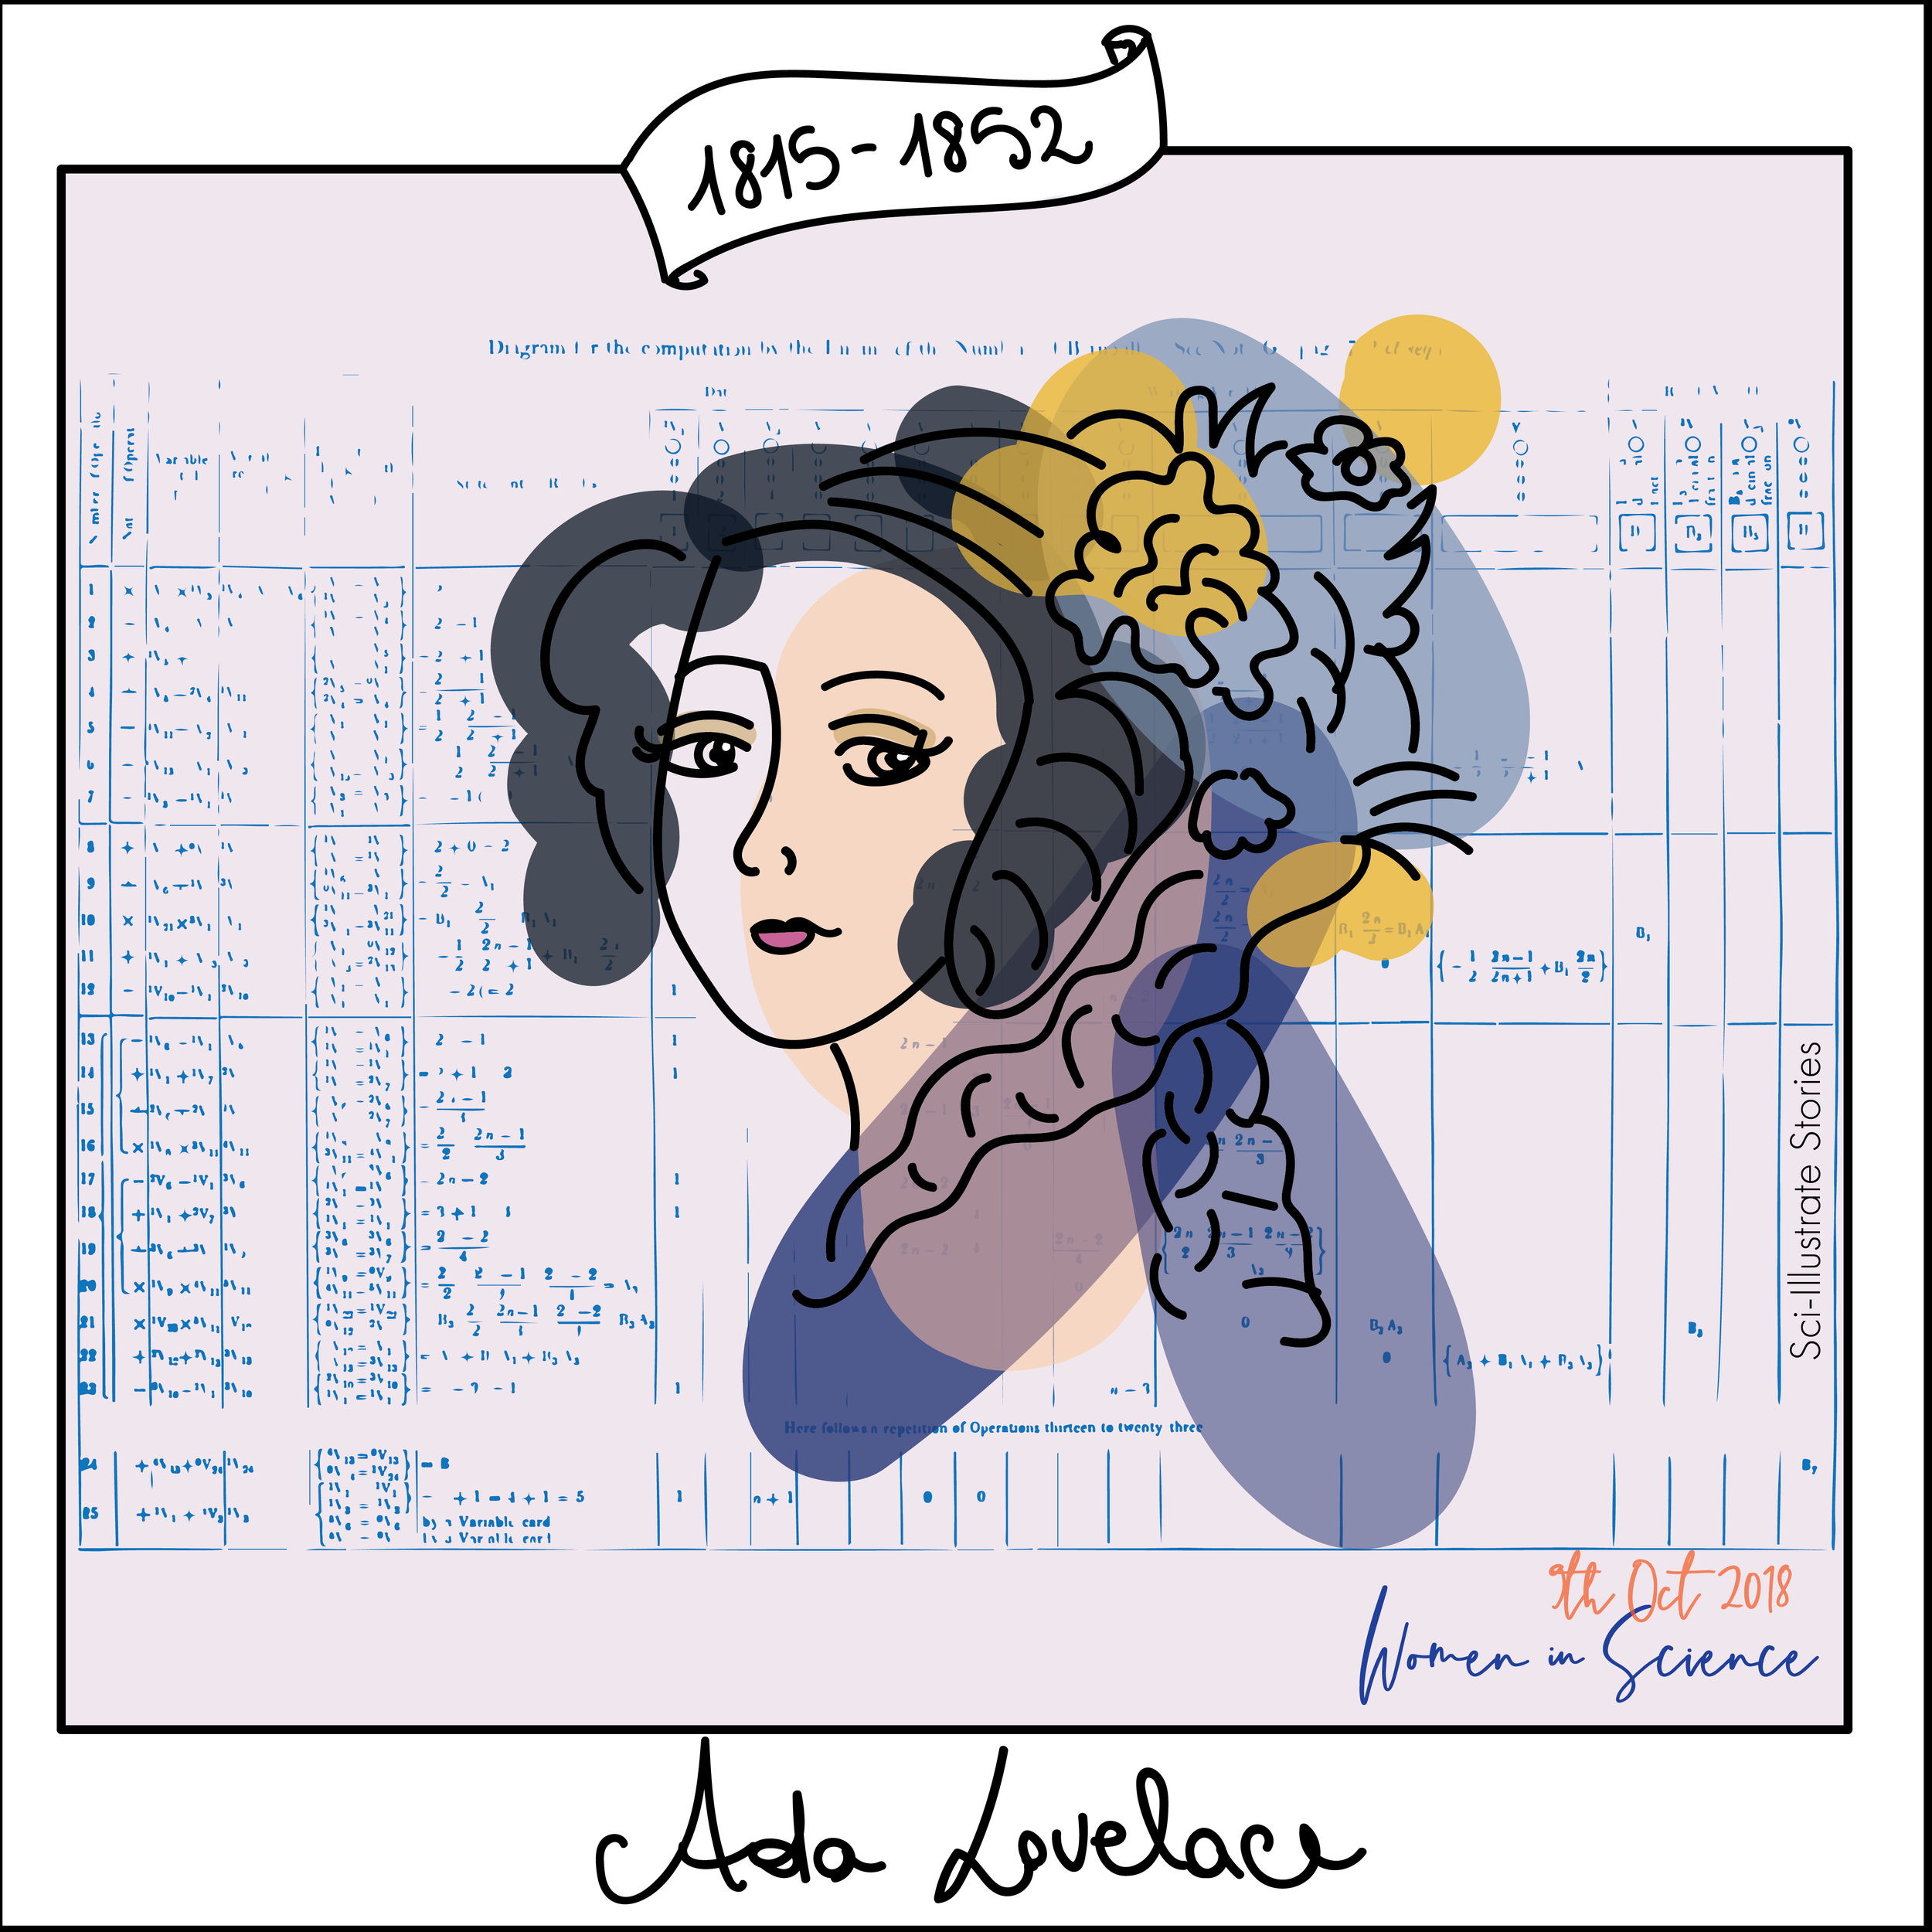 Ada-Lovelace-Day-01-01.png